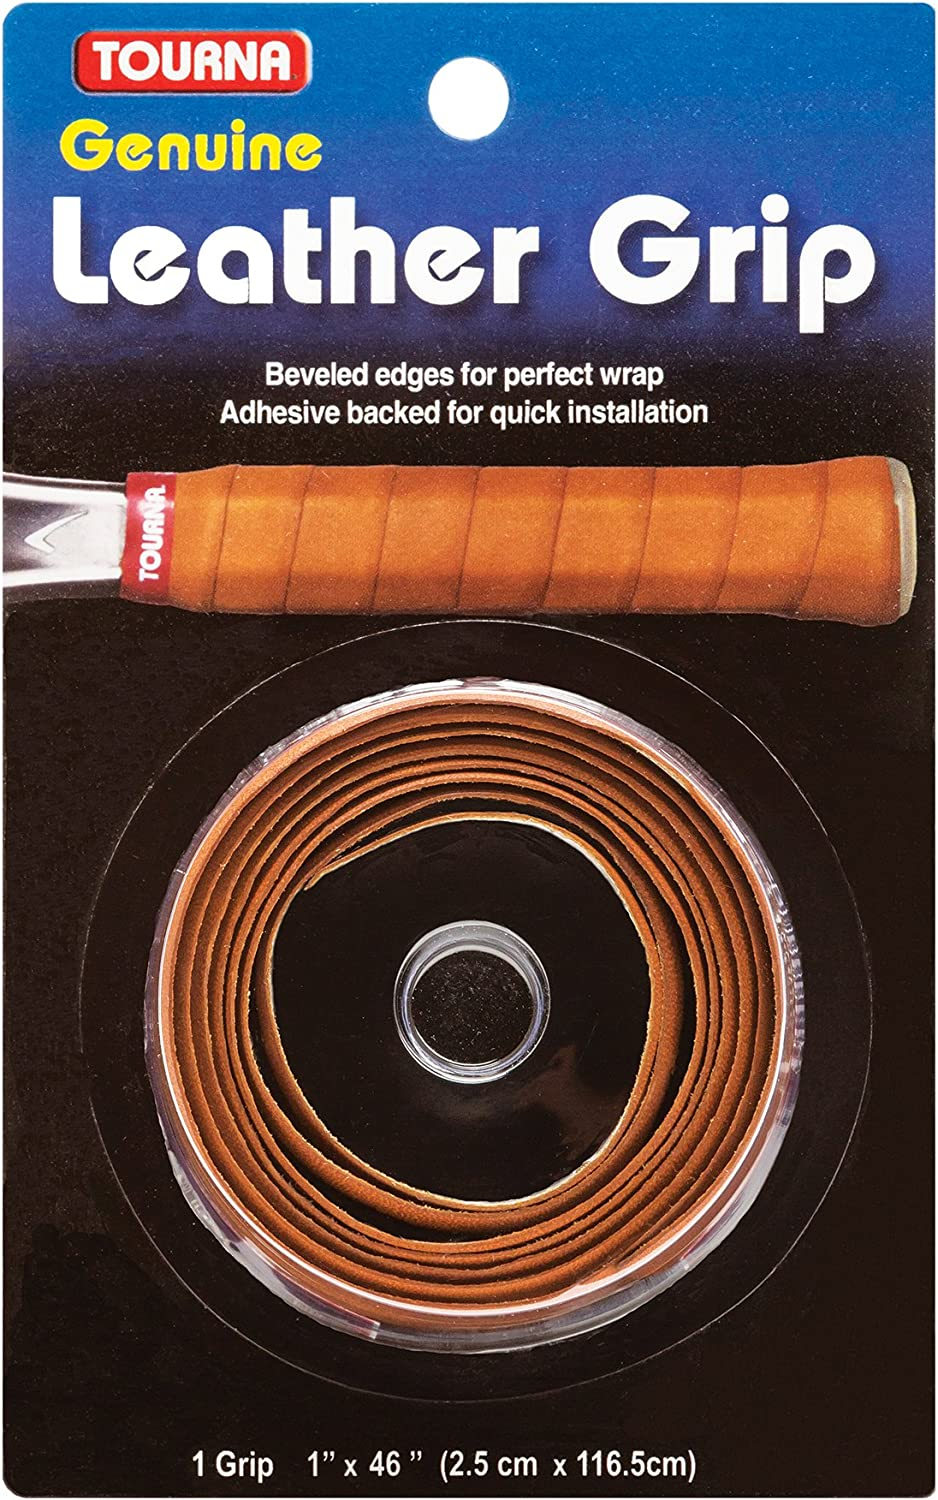 Tourna Leather Grip : Sports & Outdoors